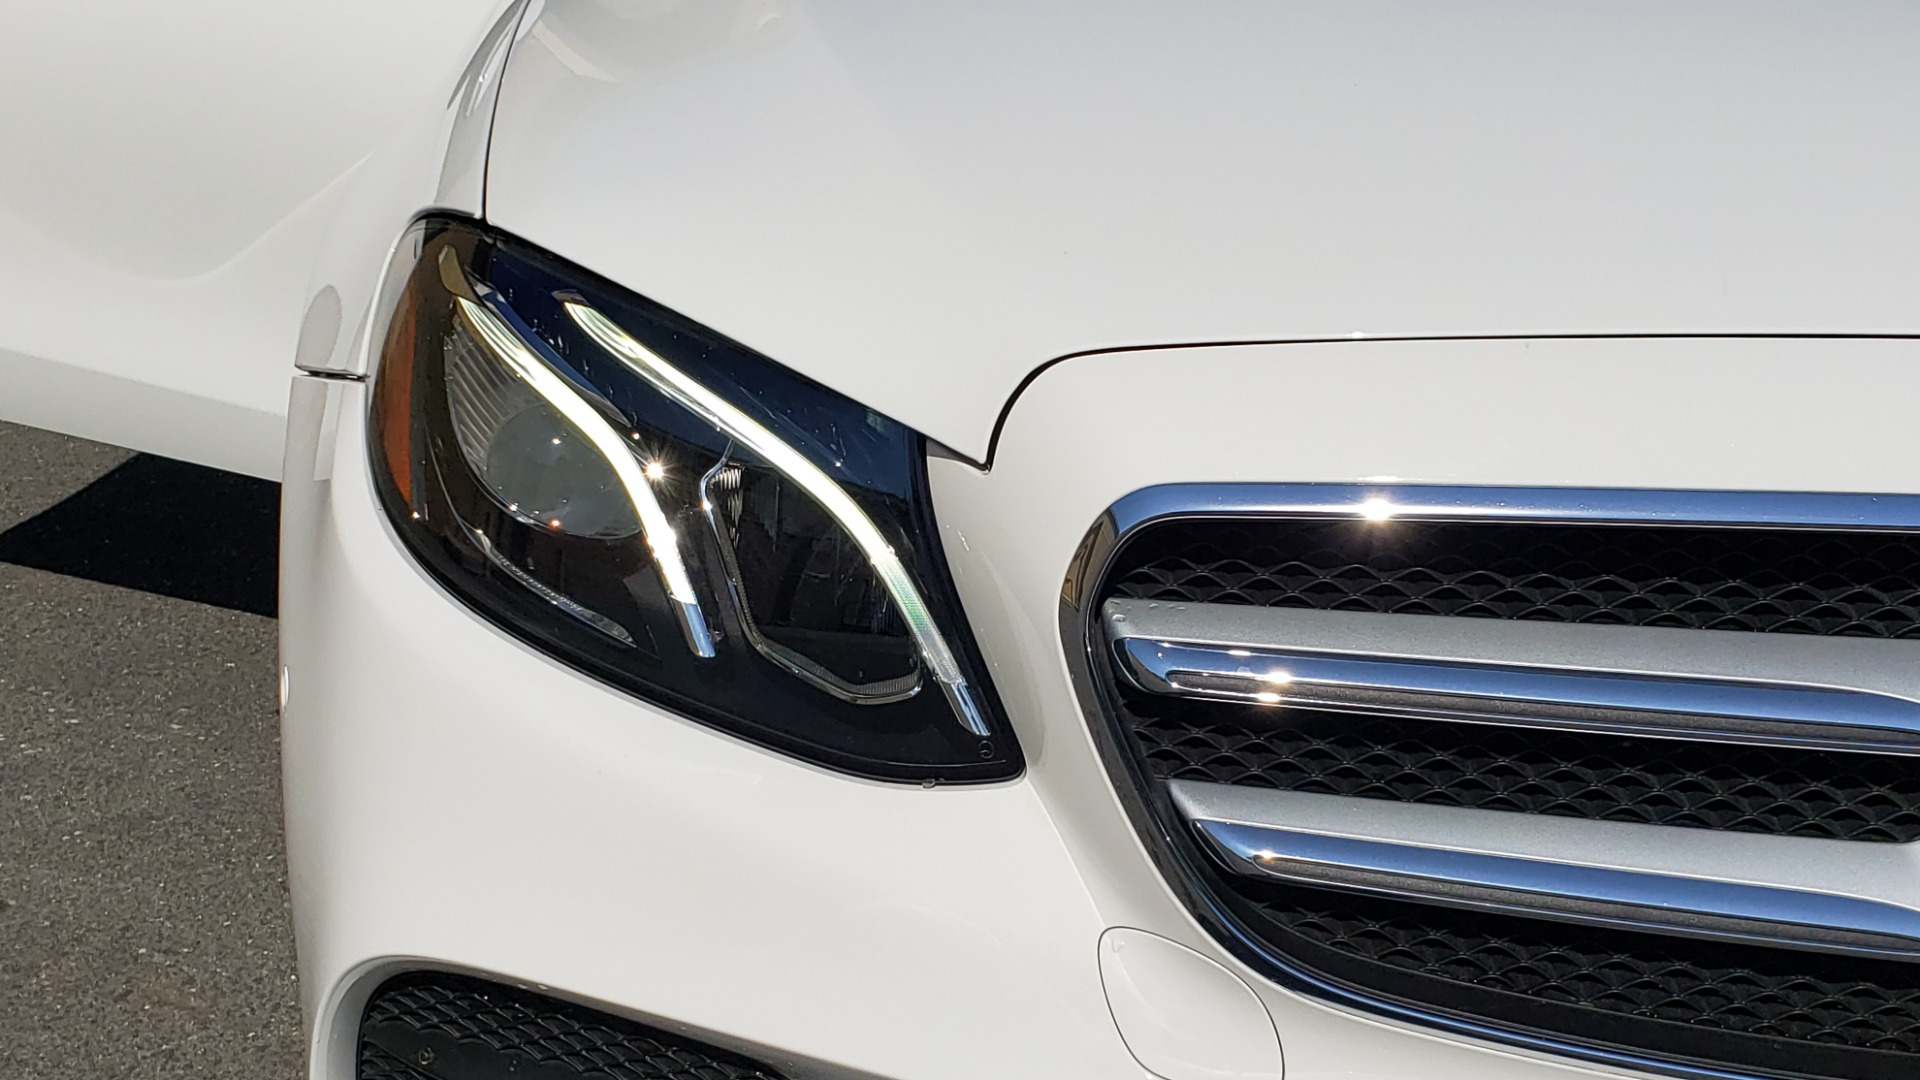 Used 2017 Mercedes-Benz E-Class E 300 PREMIUM / RWD / NAV / SNF / PARKING PILOT / REARVIEW / BURMESTER for sale Sold at Formula Imports in Charlotte NC 28227 21